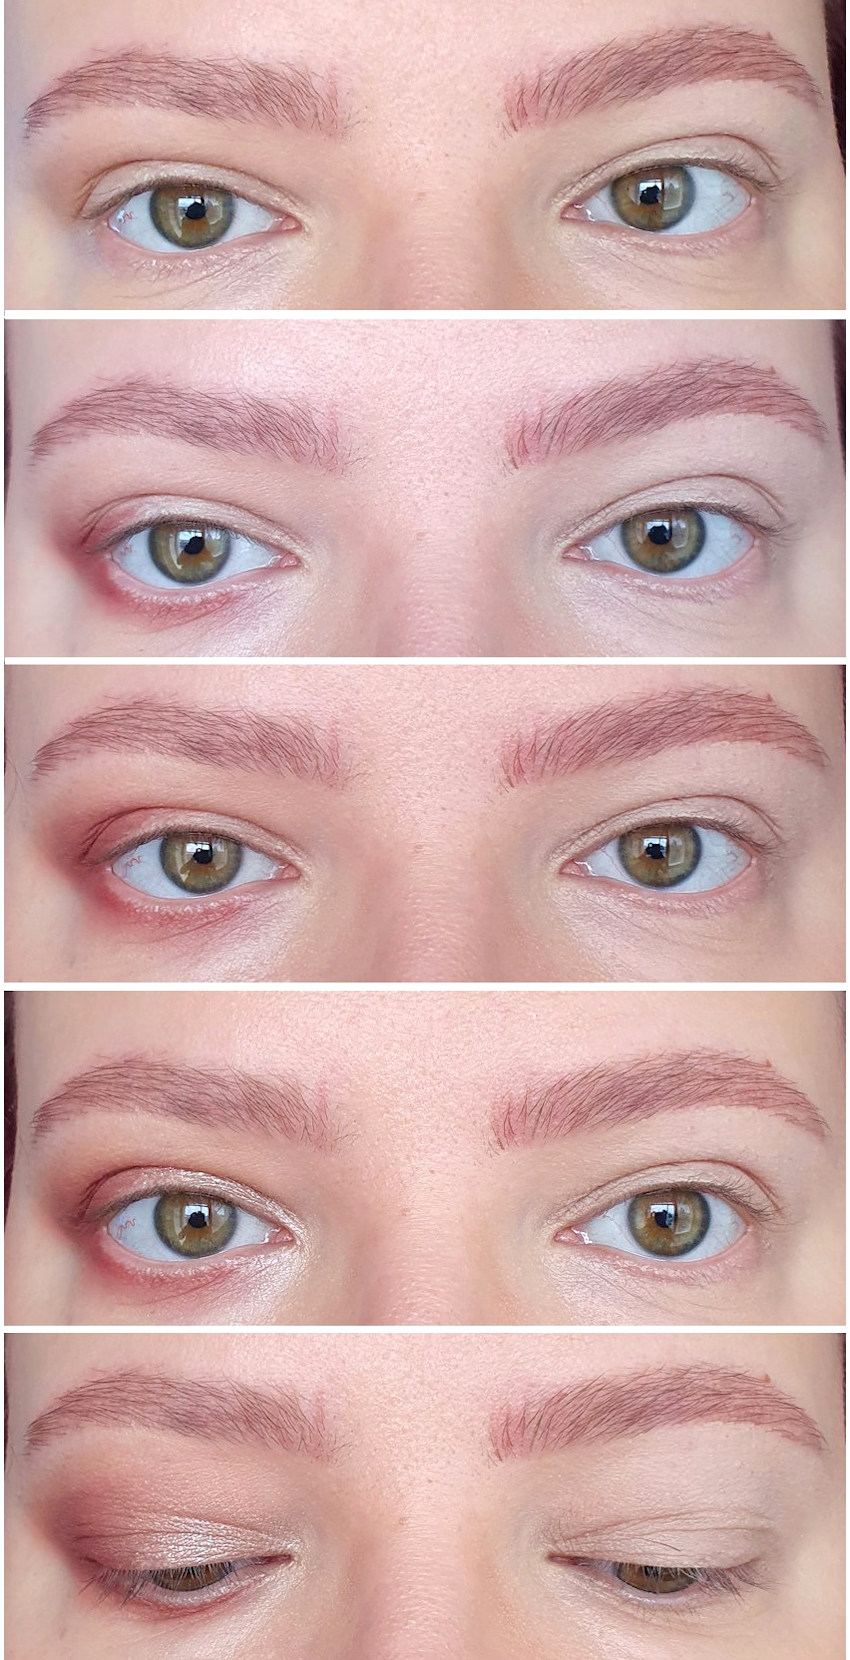 Almond eyes slightly hooded makeup tips